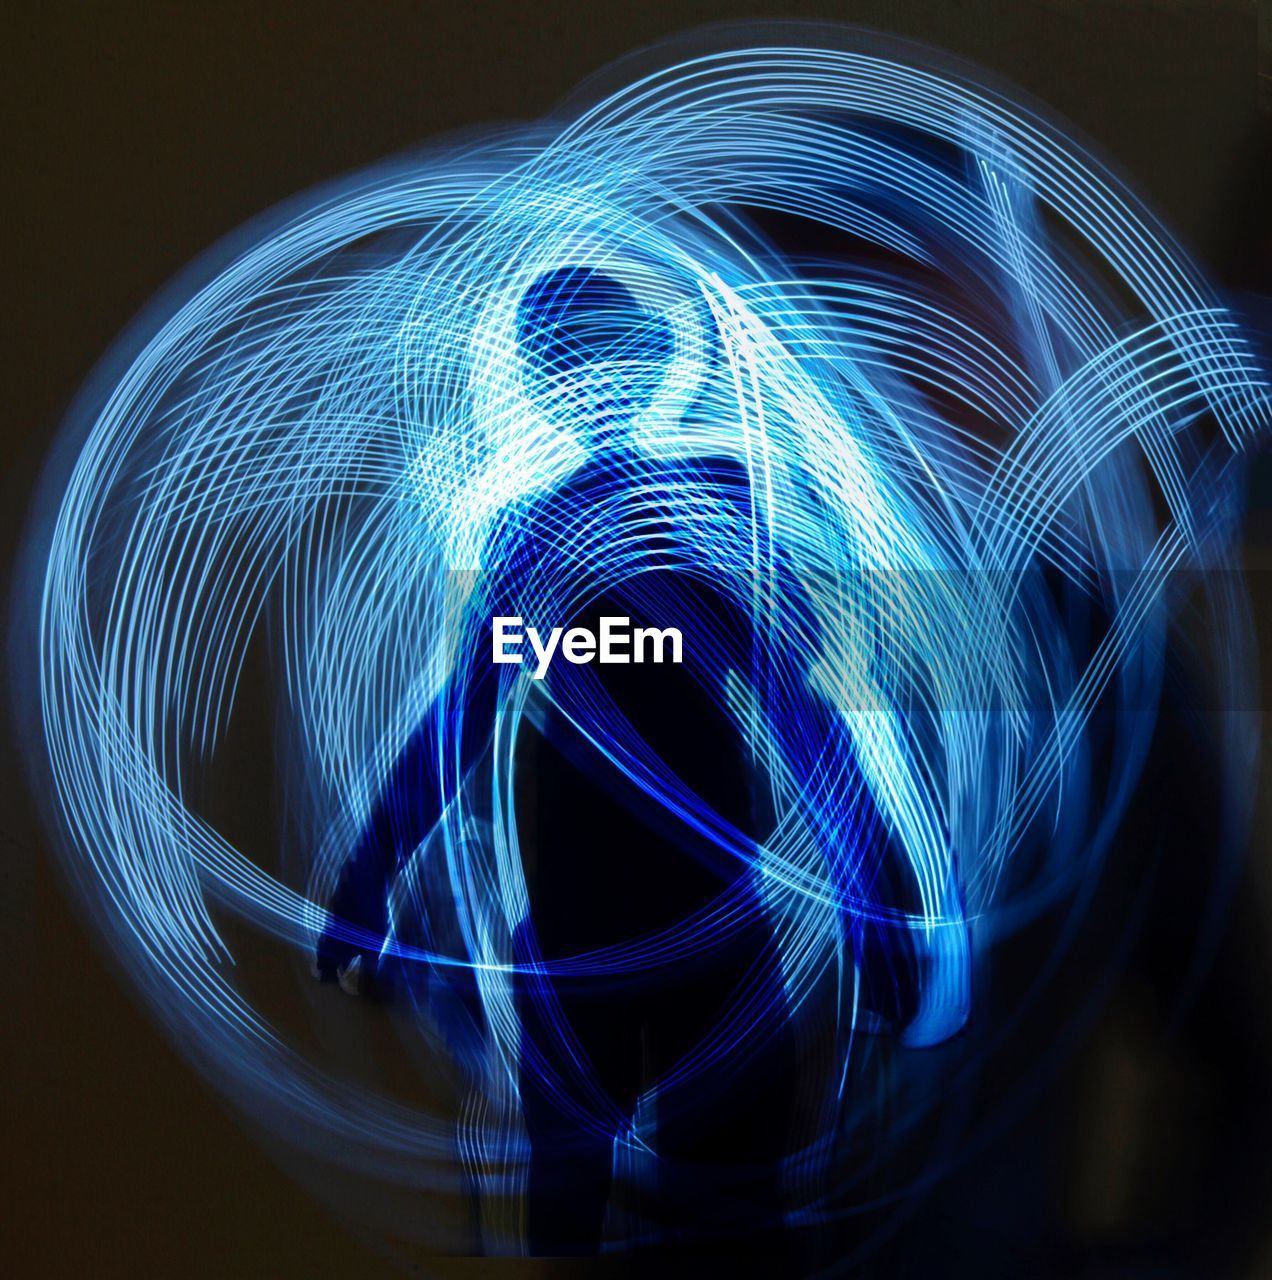 long exposure, motion, light trail, blue, pattern, light painting, illuminated, night, speed, glowing, blurred motion, creativity, art and craft, abstract, technology, light - natural phenomenon, design, no people, indoors, studio shot, black background, light, fiber optic, complexity, wire wool